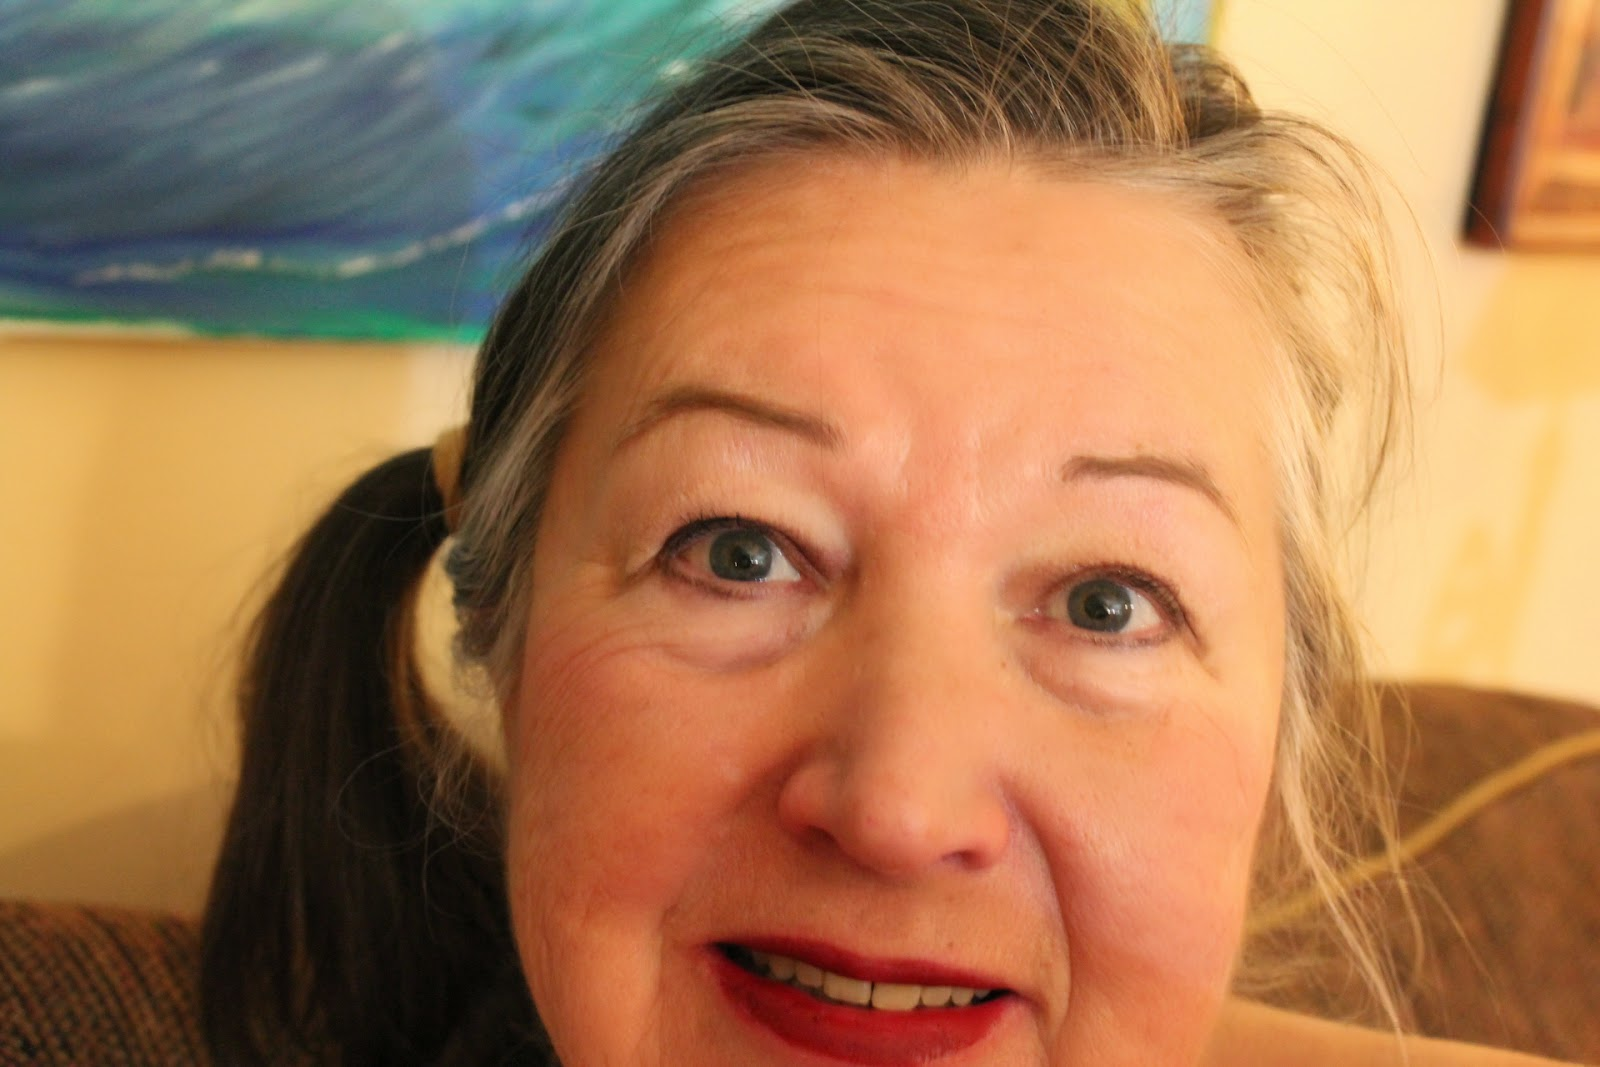 Selfie of Gloria Poole of Missouri and Georgia; 15-March-2014 at my apt in Missouri